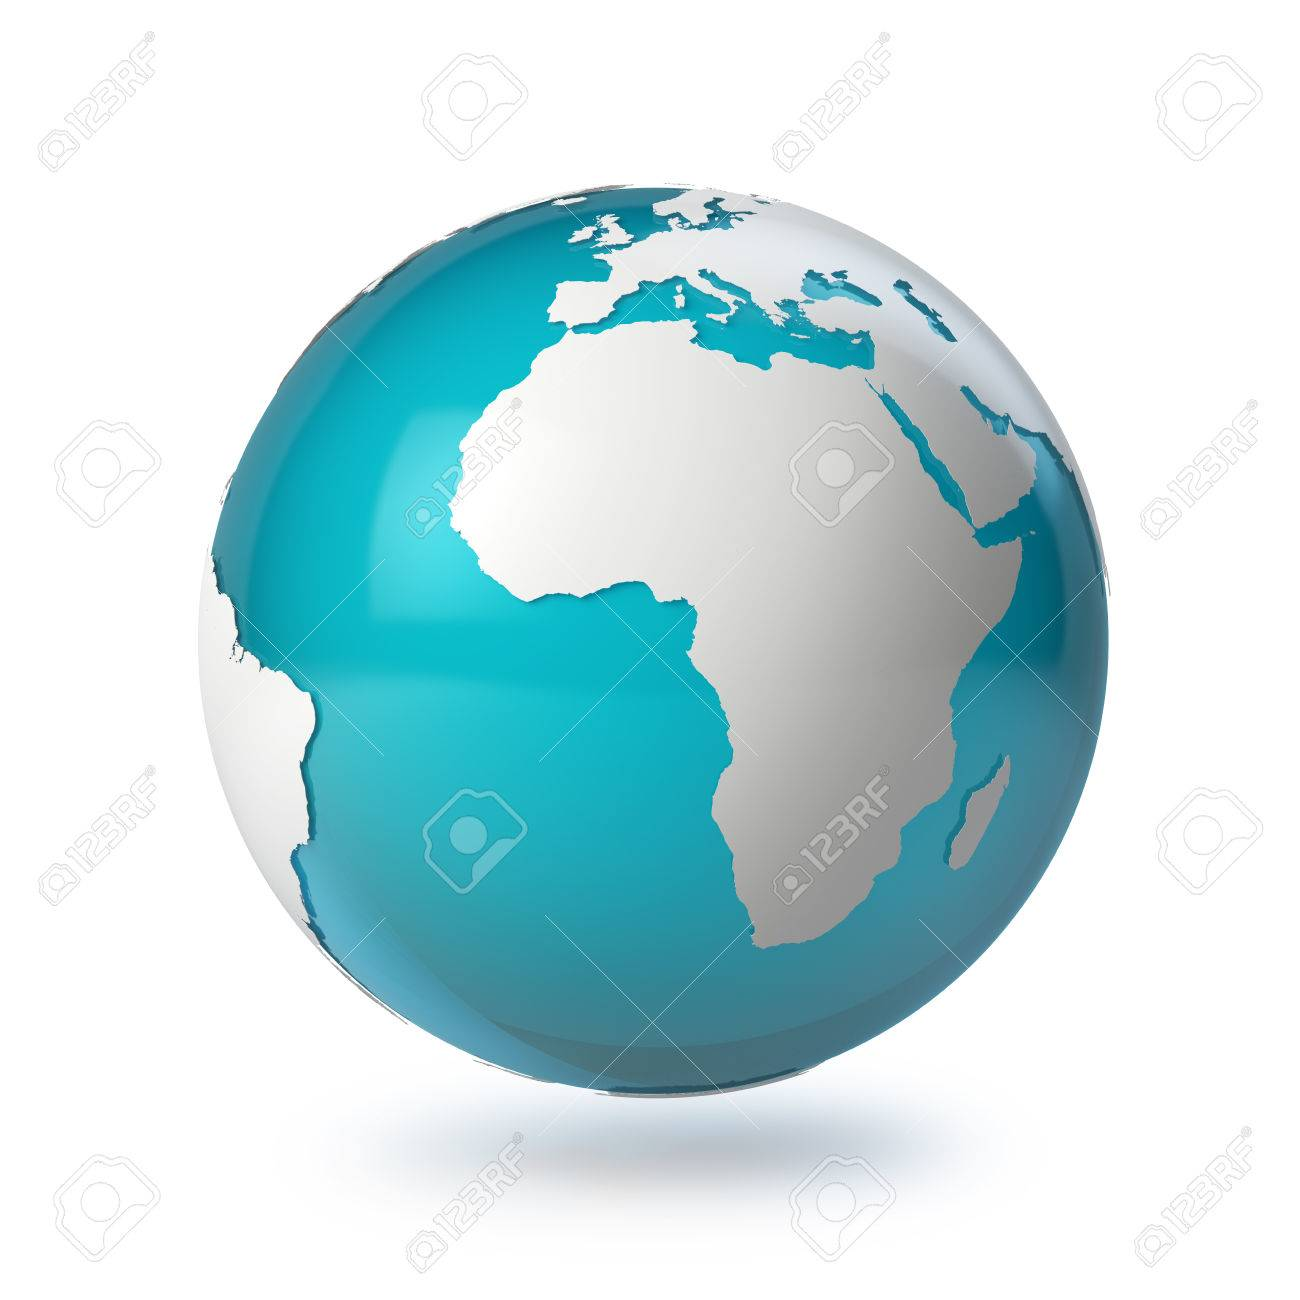 3d globe with white world map of continents globe with shadow 3d globe with white world map of continents globe with shadow on a white background gumiabroncs Gallery